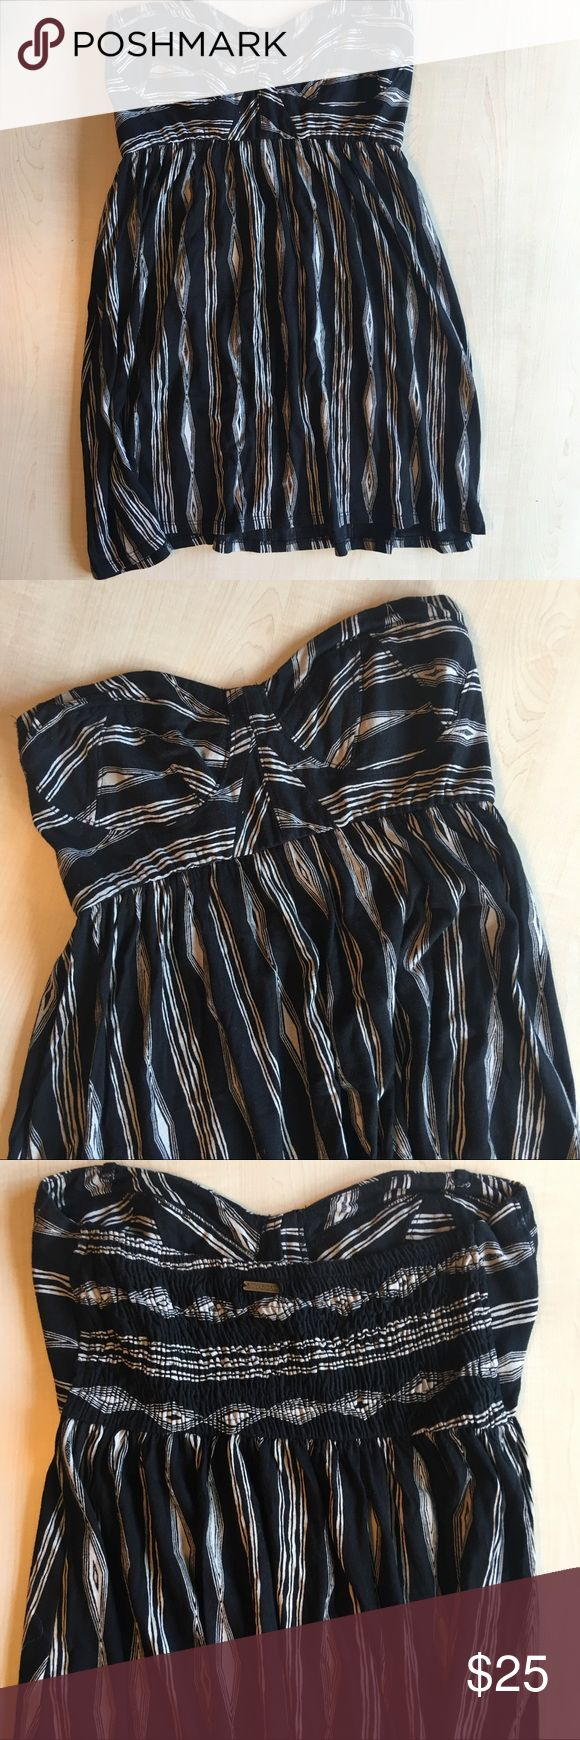 "Billabong Tube Top Dress Billabong Tube Dress •length 24"" -A12- Billabong Dresses Strapless"